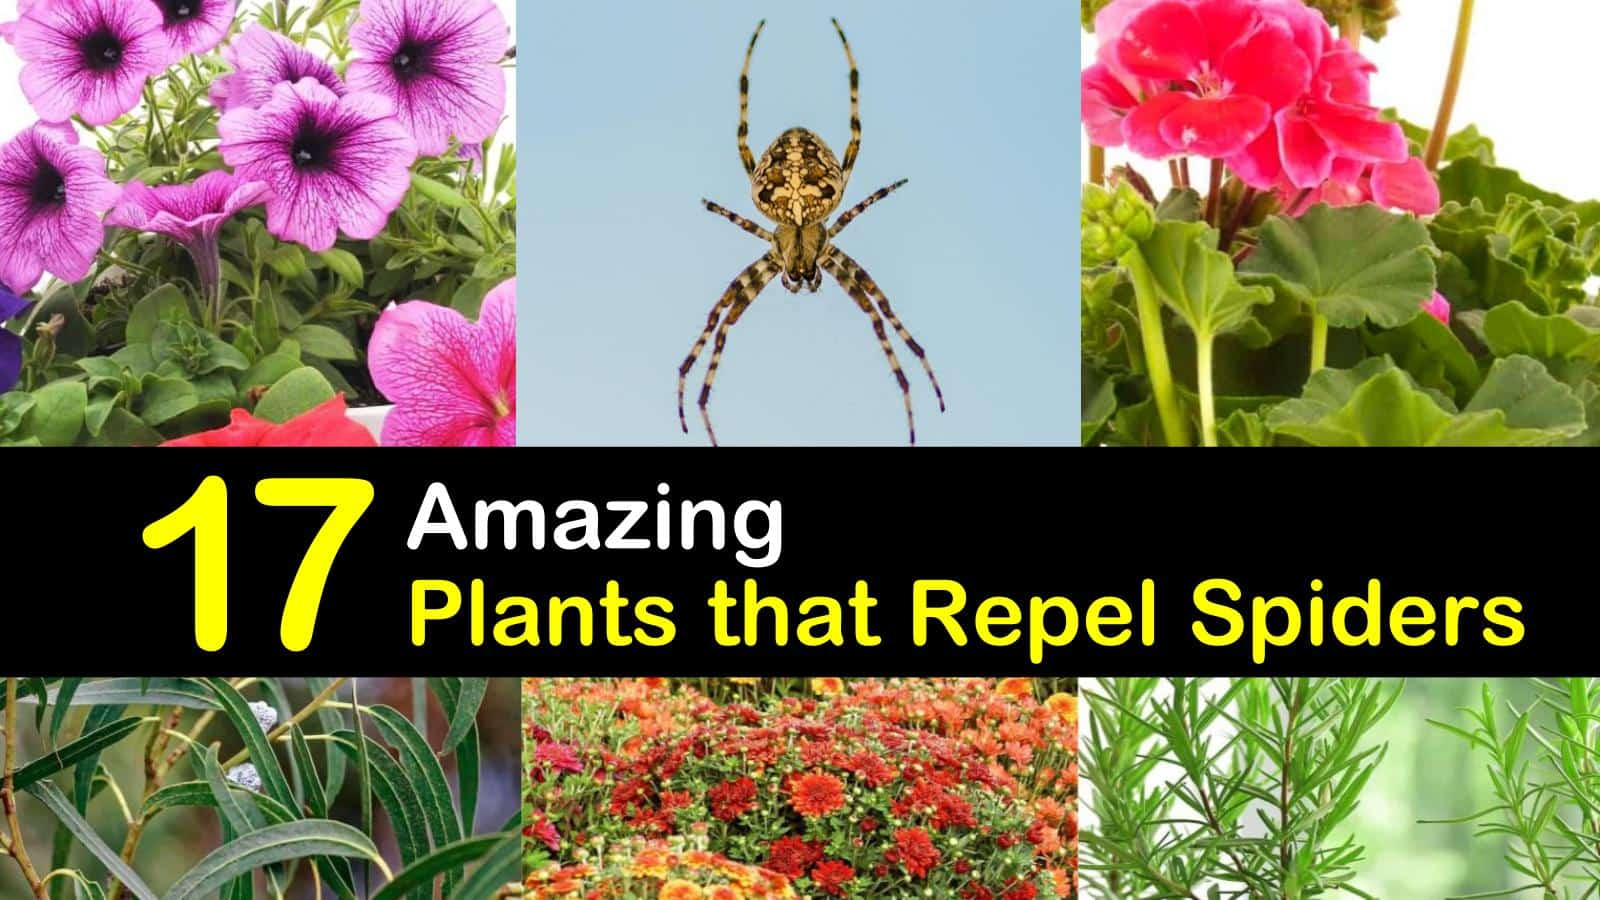 plants that repel spiders titleimg1